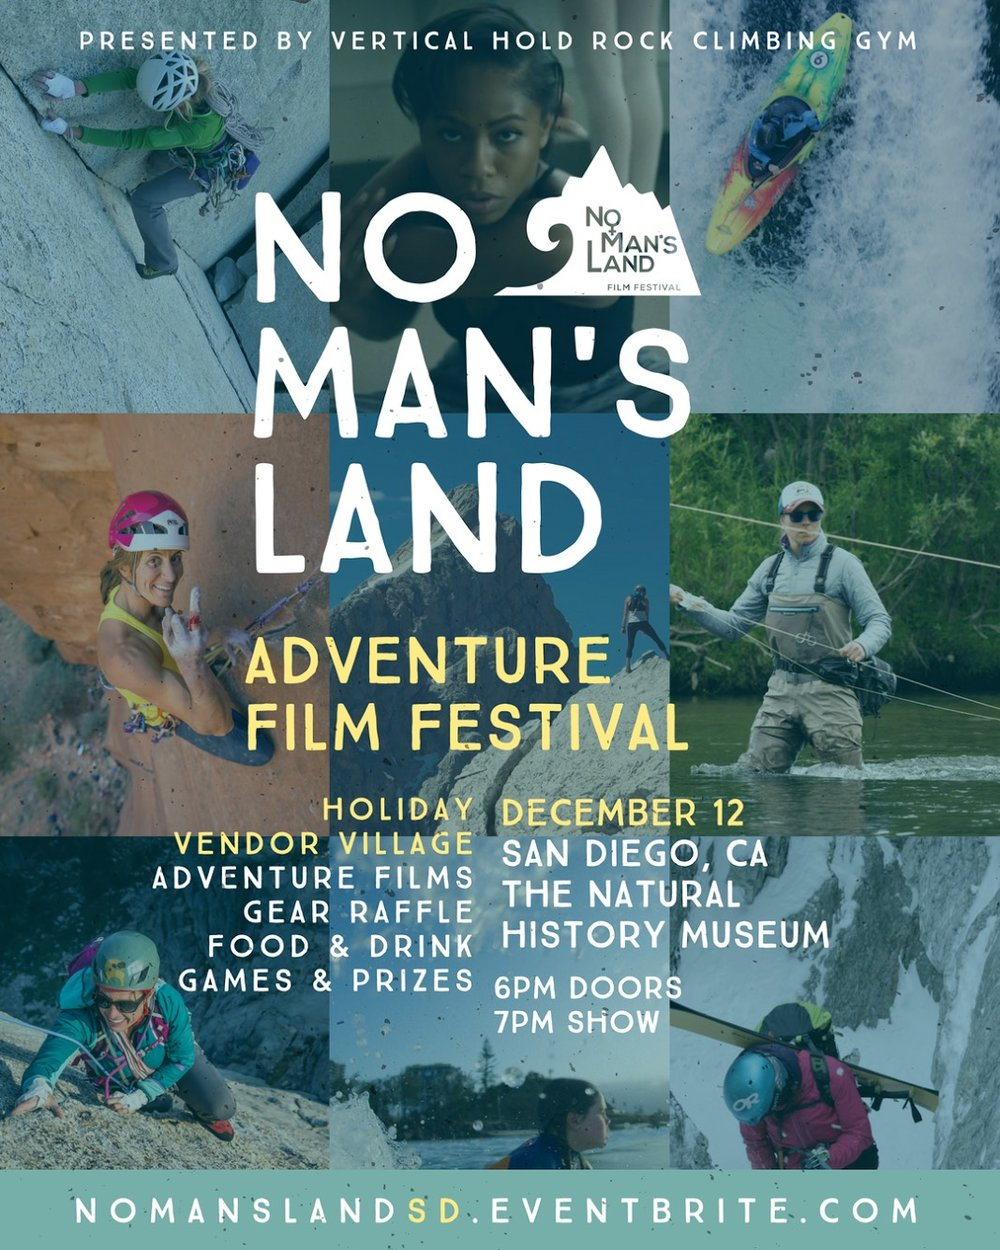 No mans land film festival